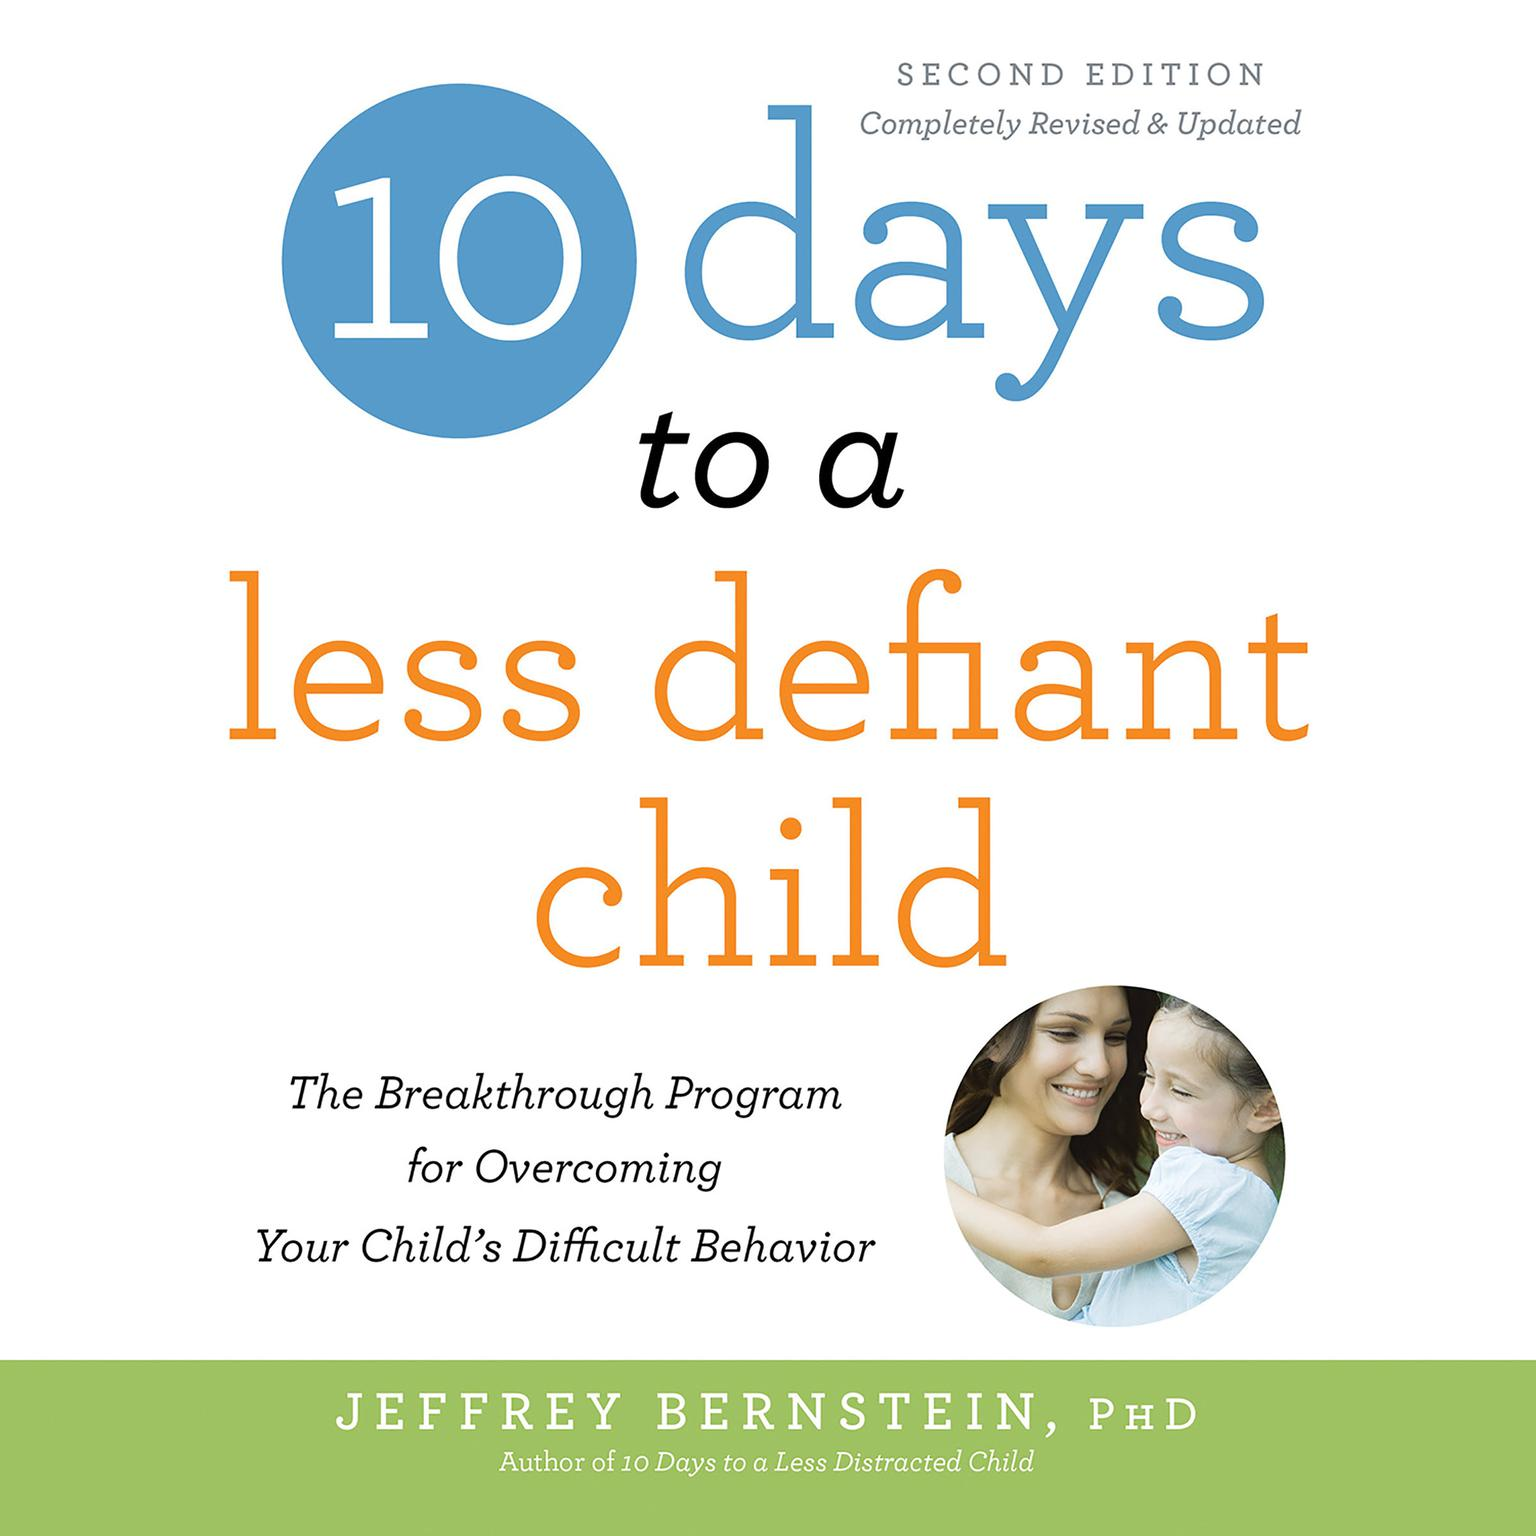 10 Days to a Less Defiant Child, second edition: The Breakthrough Program for Overcoming Your Childs Difficult Behavior Audiobook, by Jeffrey Bernstein